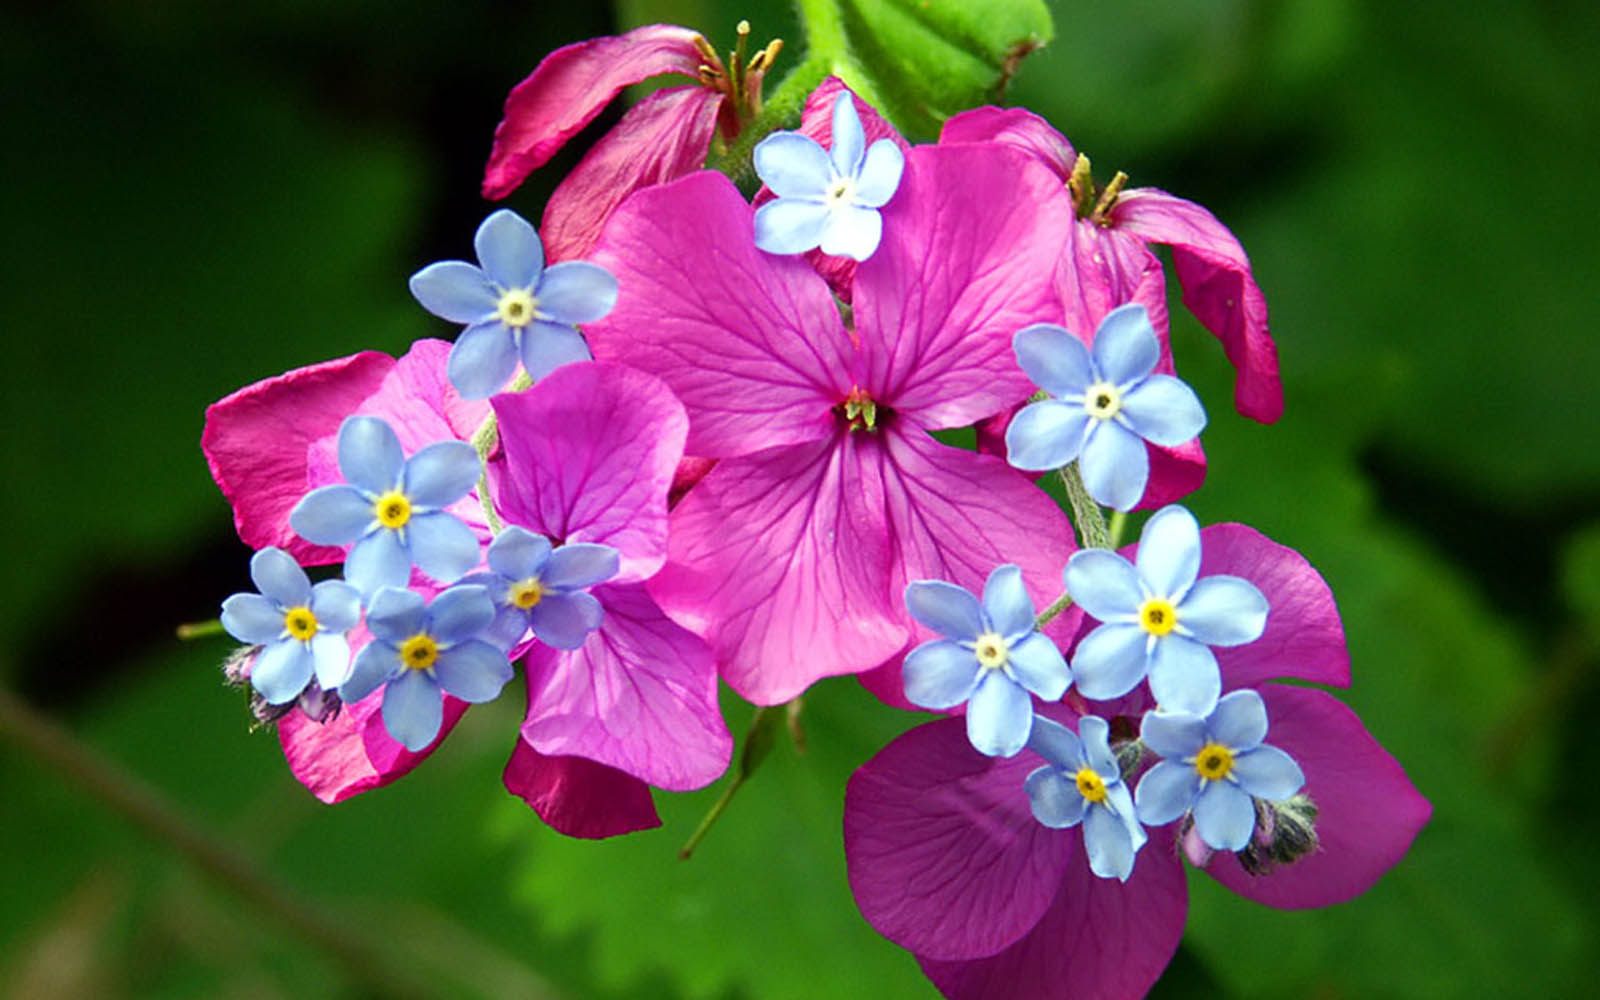 Spring flowers images and names images flower decoration ideas spring flowers pictures with names comousar spring flowers pictures with names colorful spring flowers 14123 mightylinksfo mightylinksfo